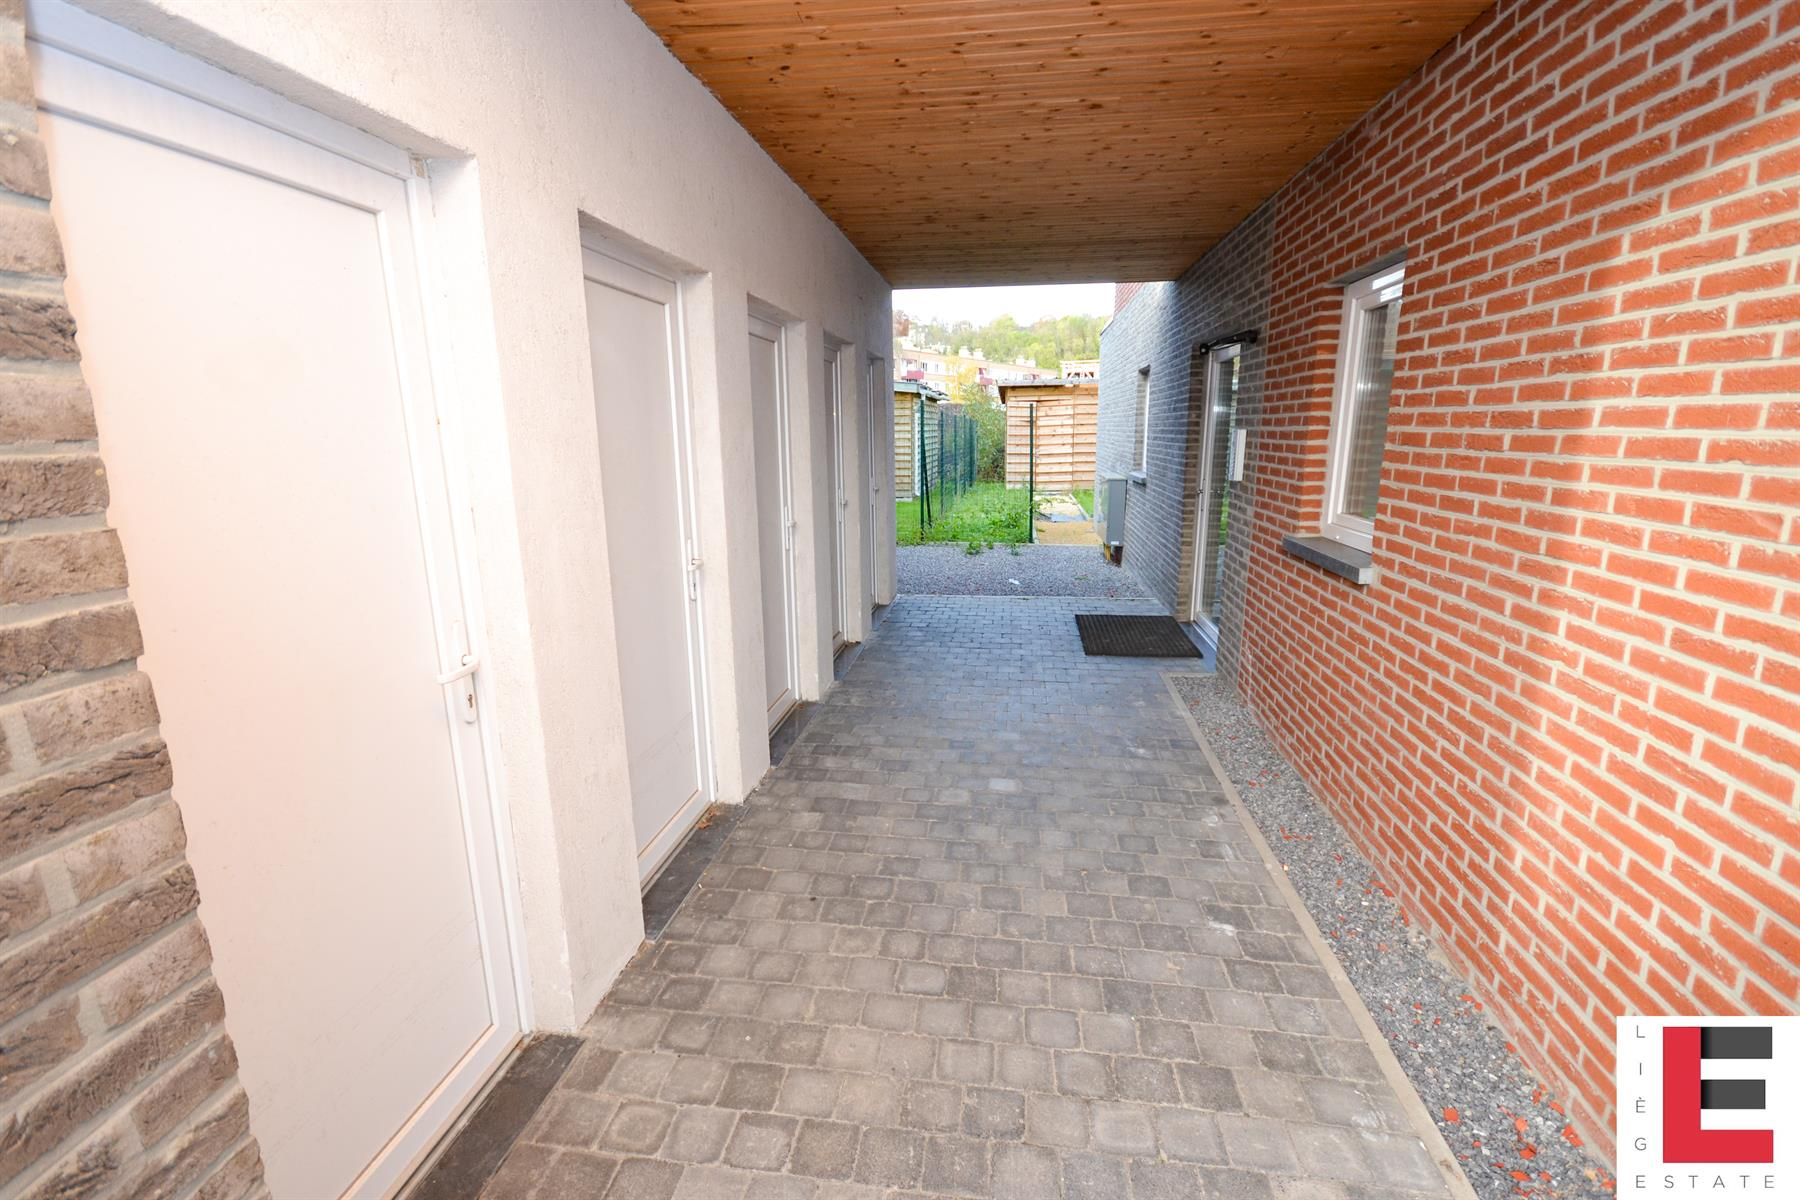 Ground floor with garden - Liege - #3914641-12